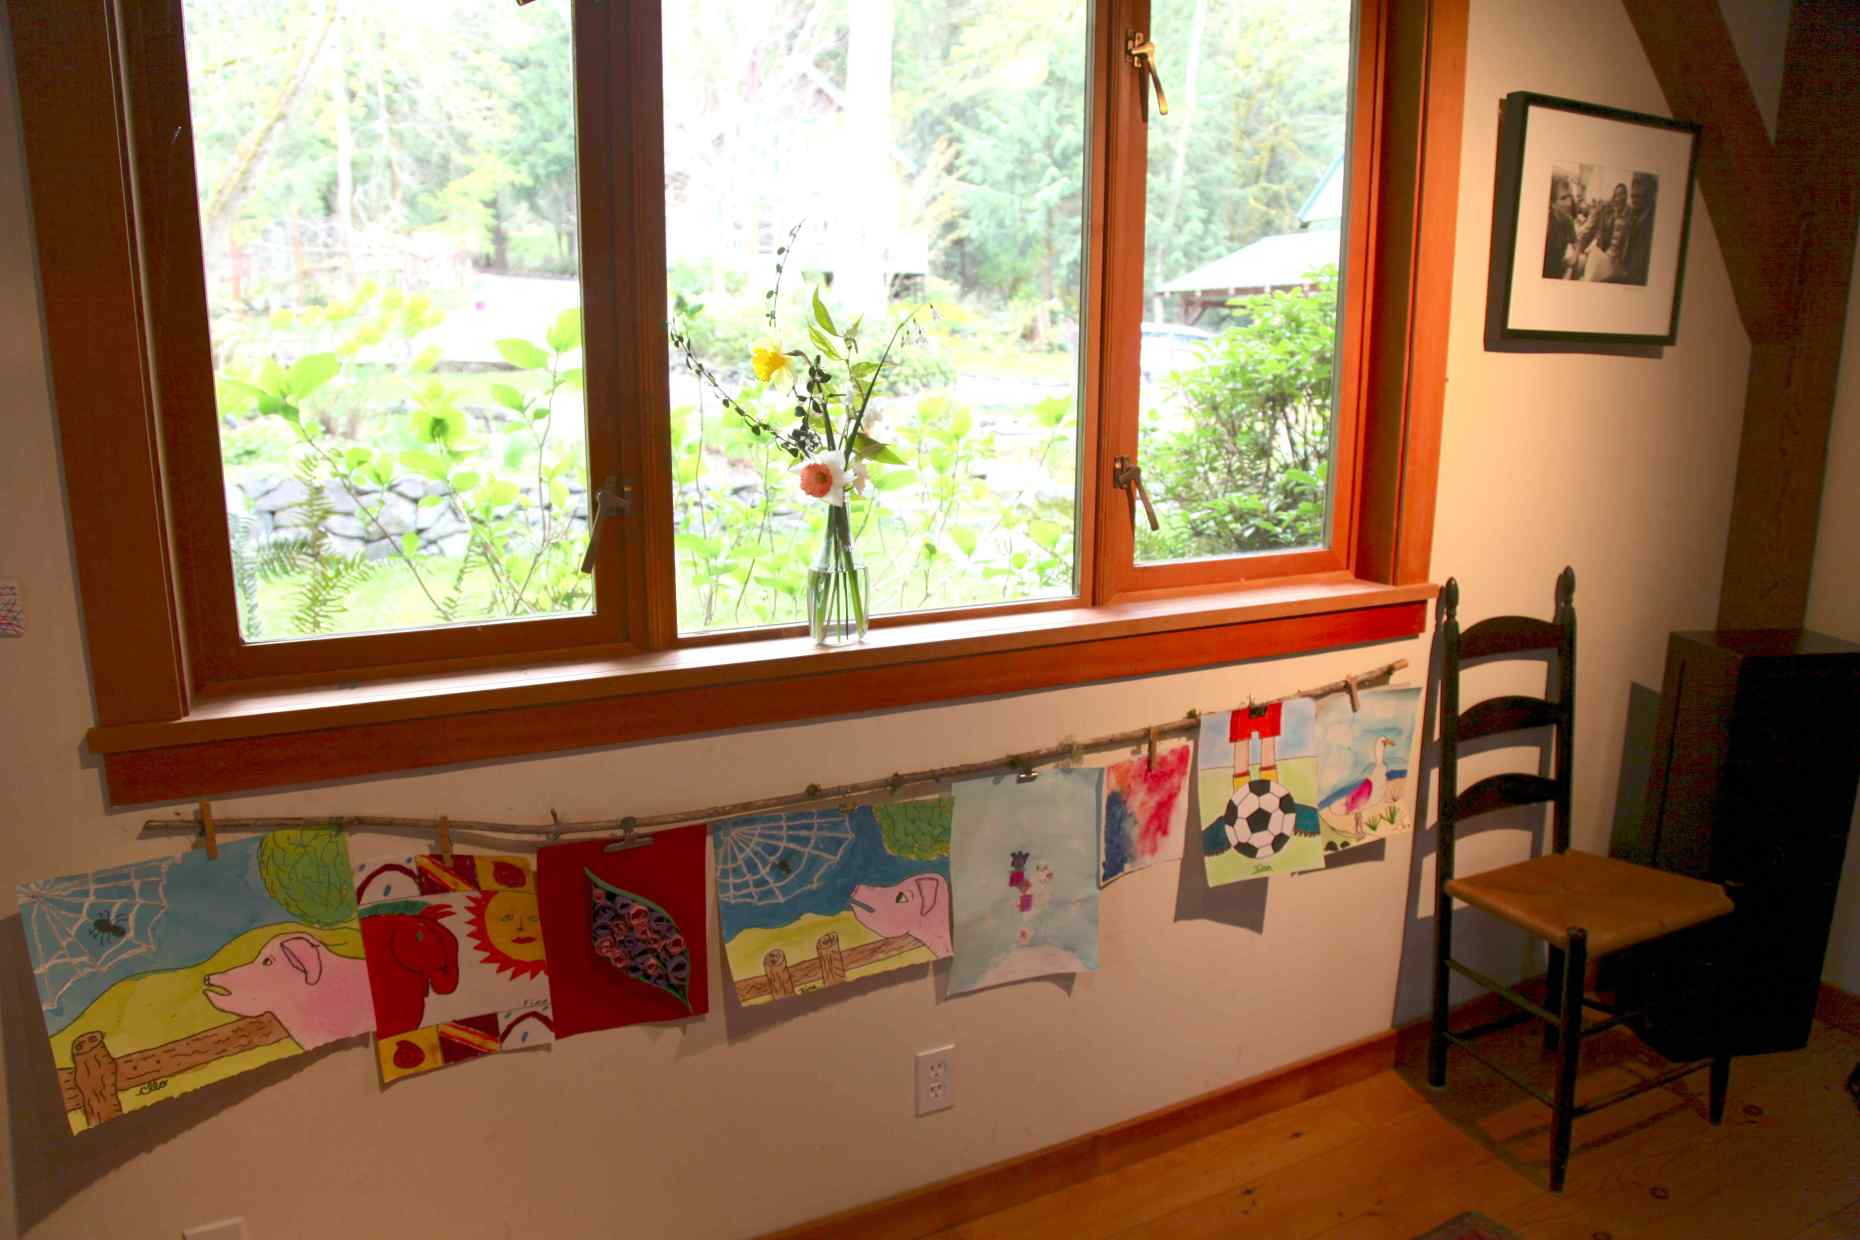 How to simply display your children's art. Photo © Liesl Clark